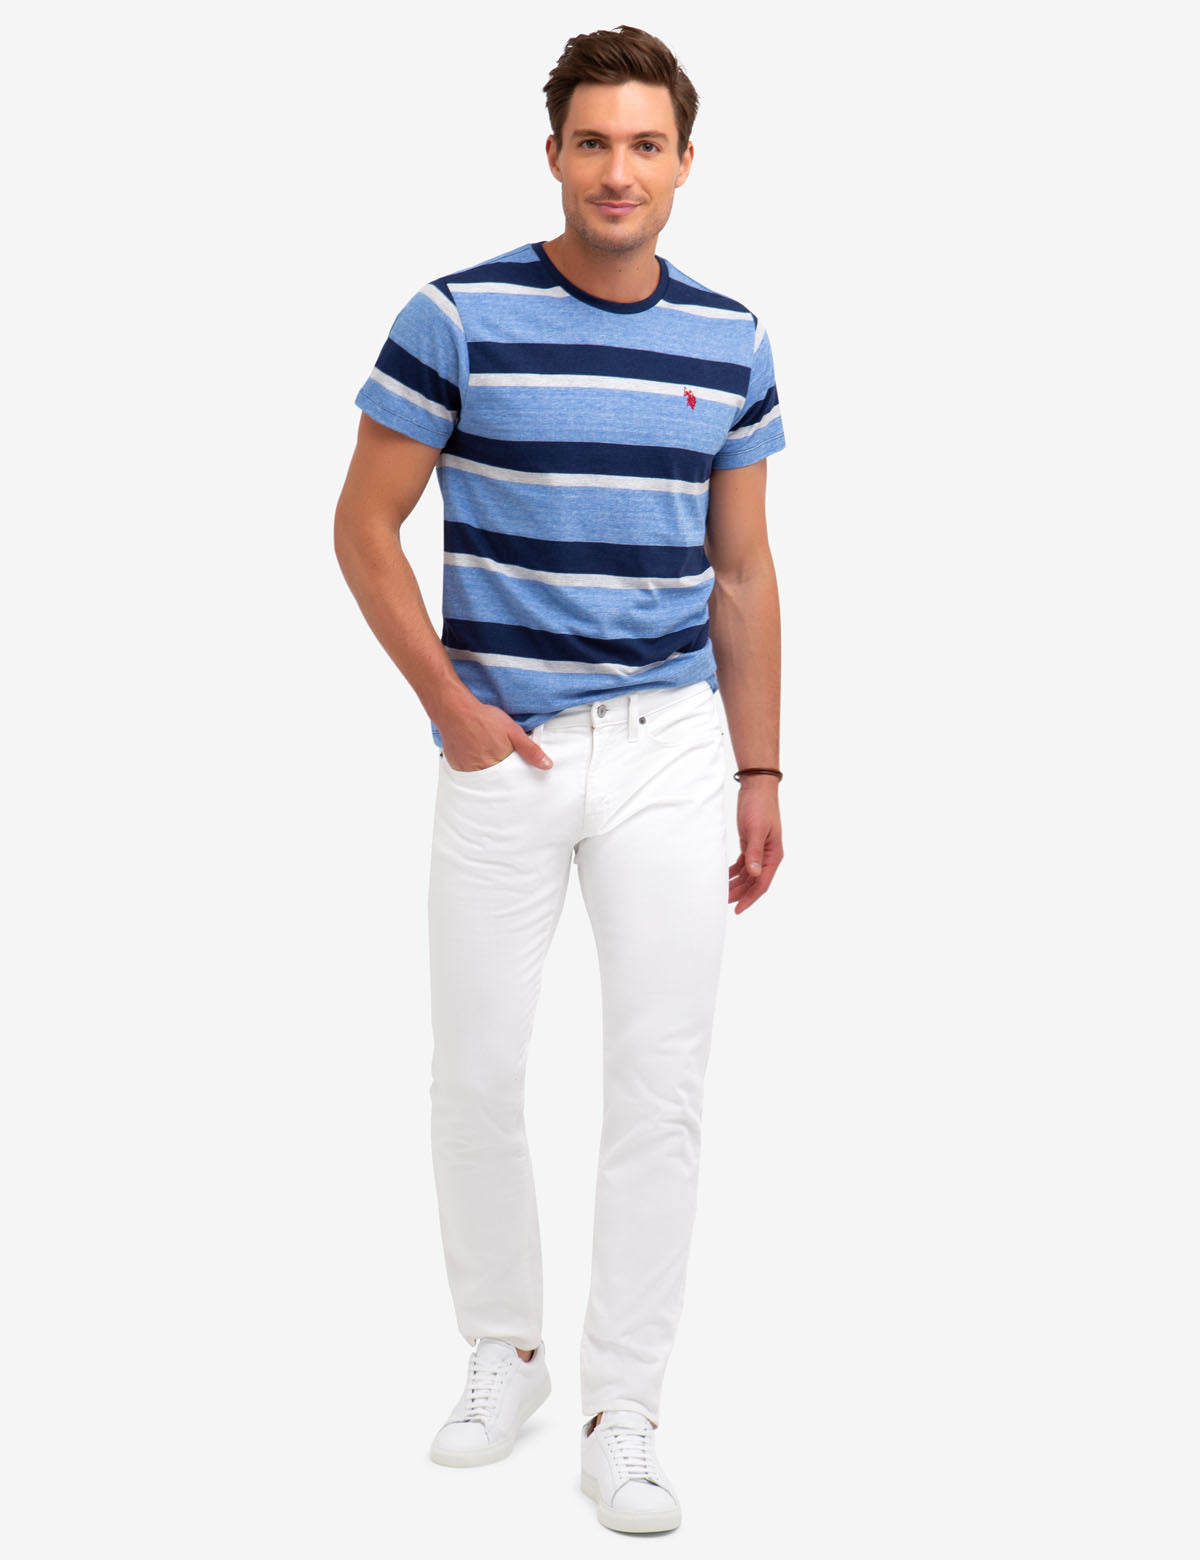 HEATHERED STRIPED T-SHIRT - U.S. Polo Assn.